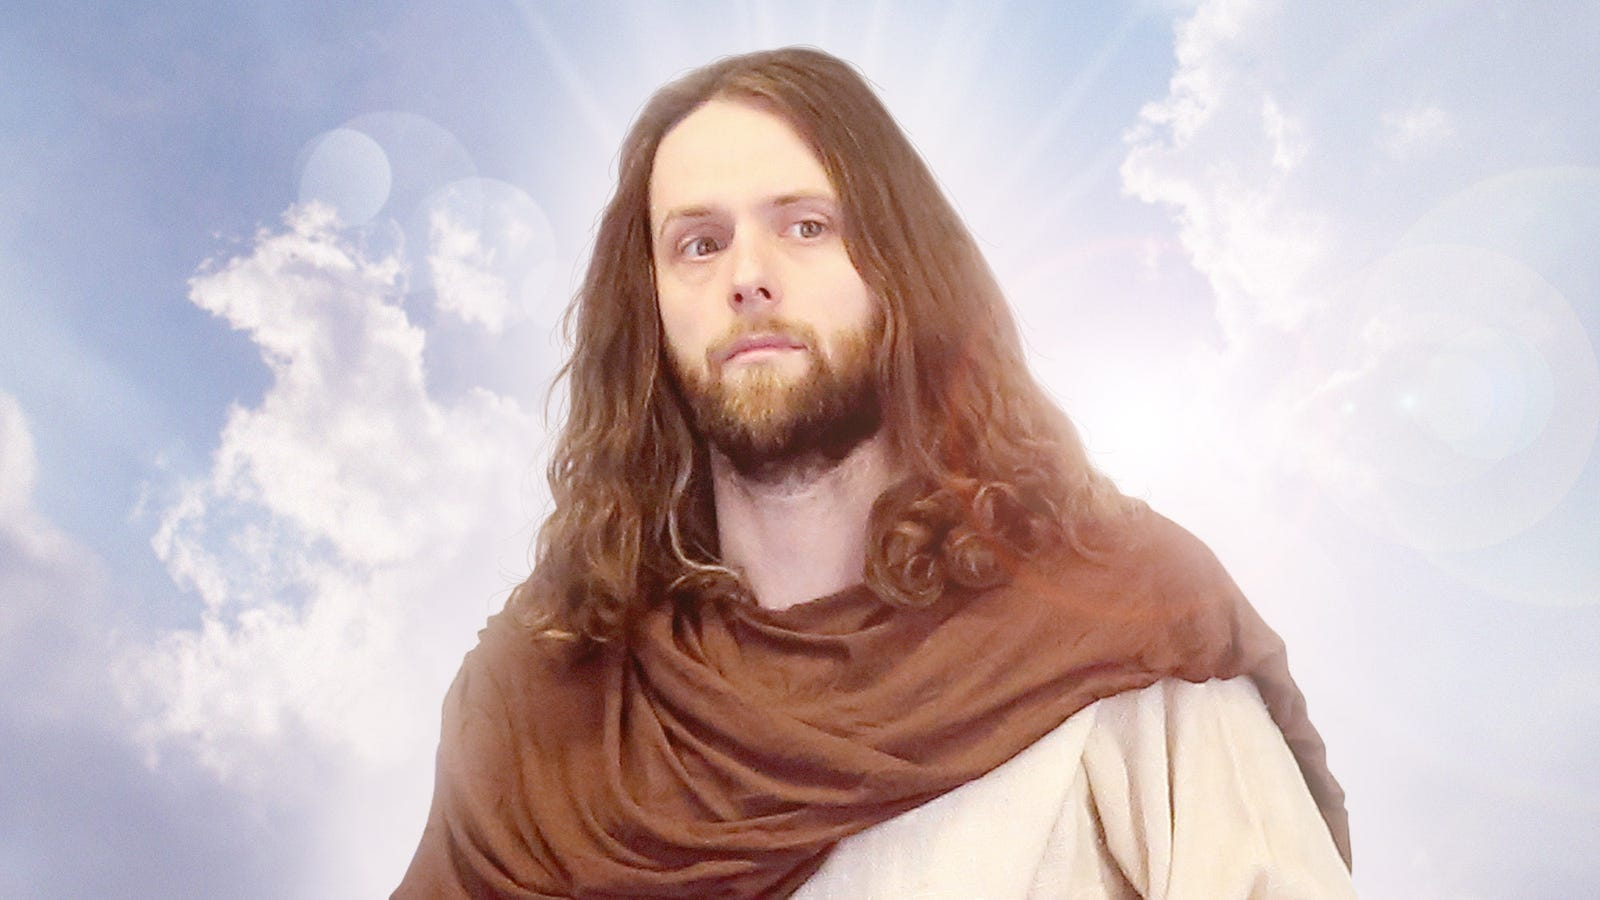 Christ Calls Off Plans For Return After Realizing It's Been So Long It'll Be Weird Now